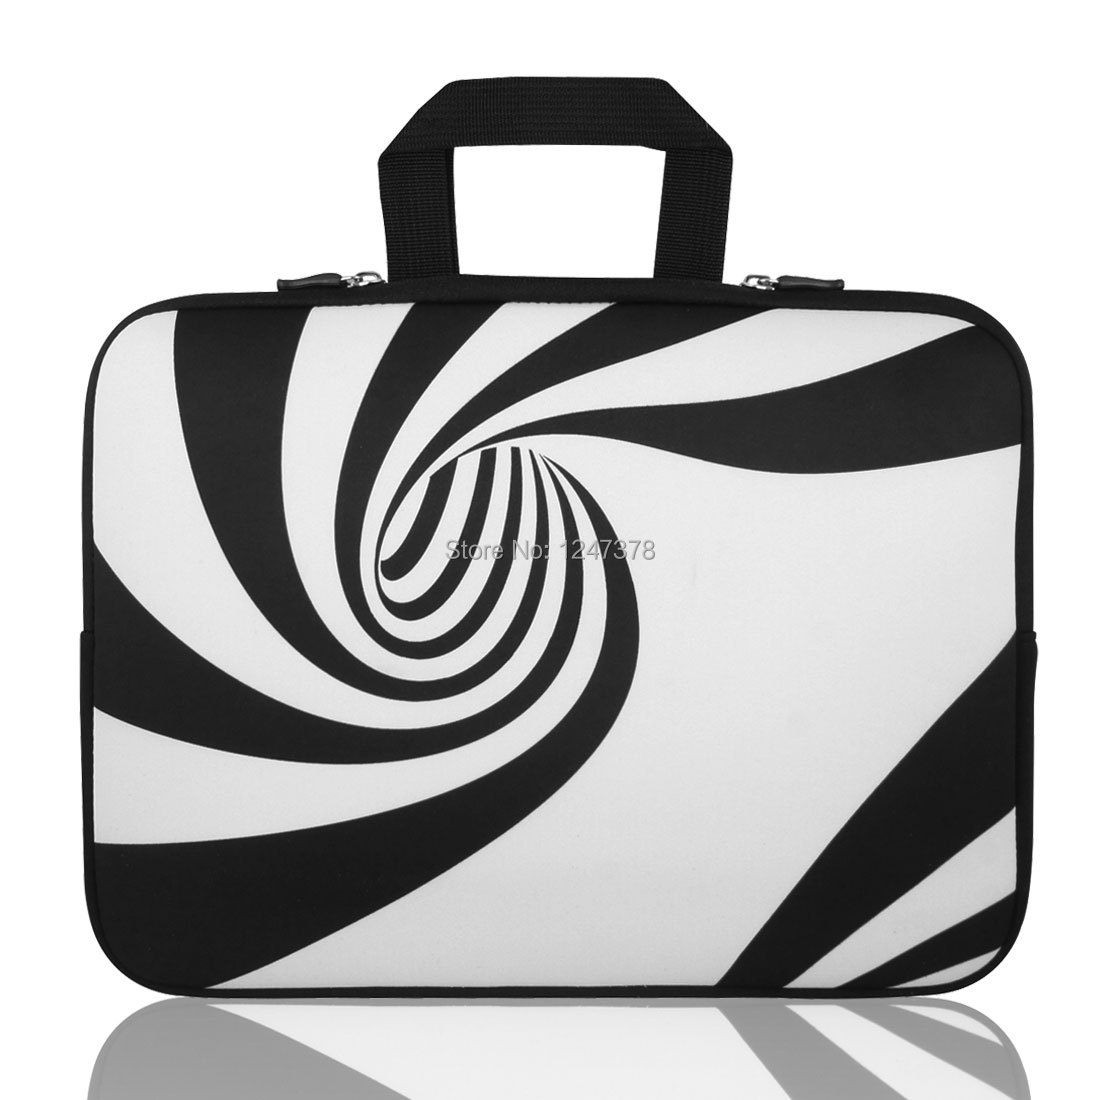 "15"" 15.4"" 15.6"" Swirl Neoprene Laptop Sleeve Handle Bag Pouch Discount 50 39cm x 29cm x 2cm (L*W*T)(China (Mainland))"